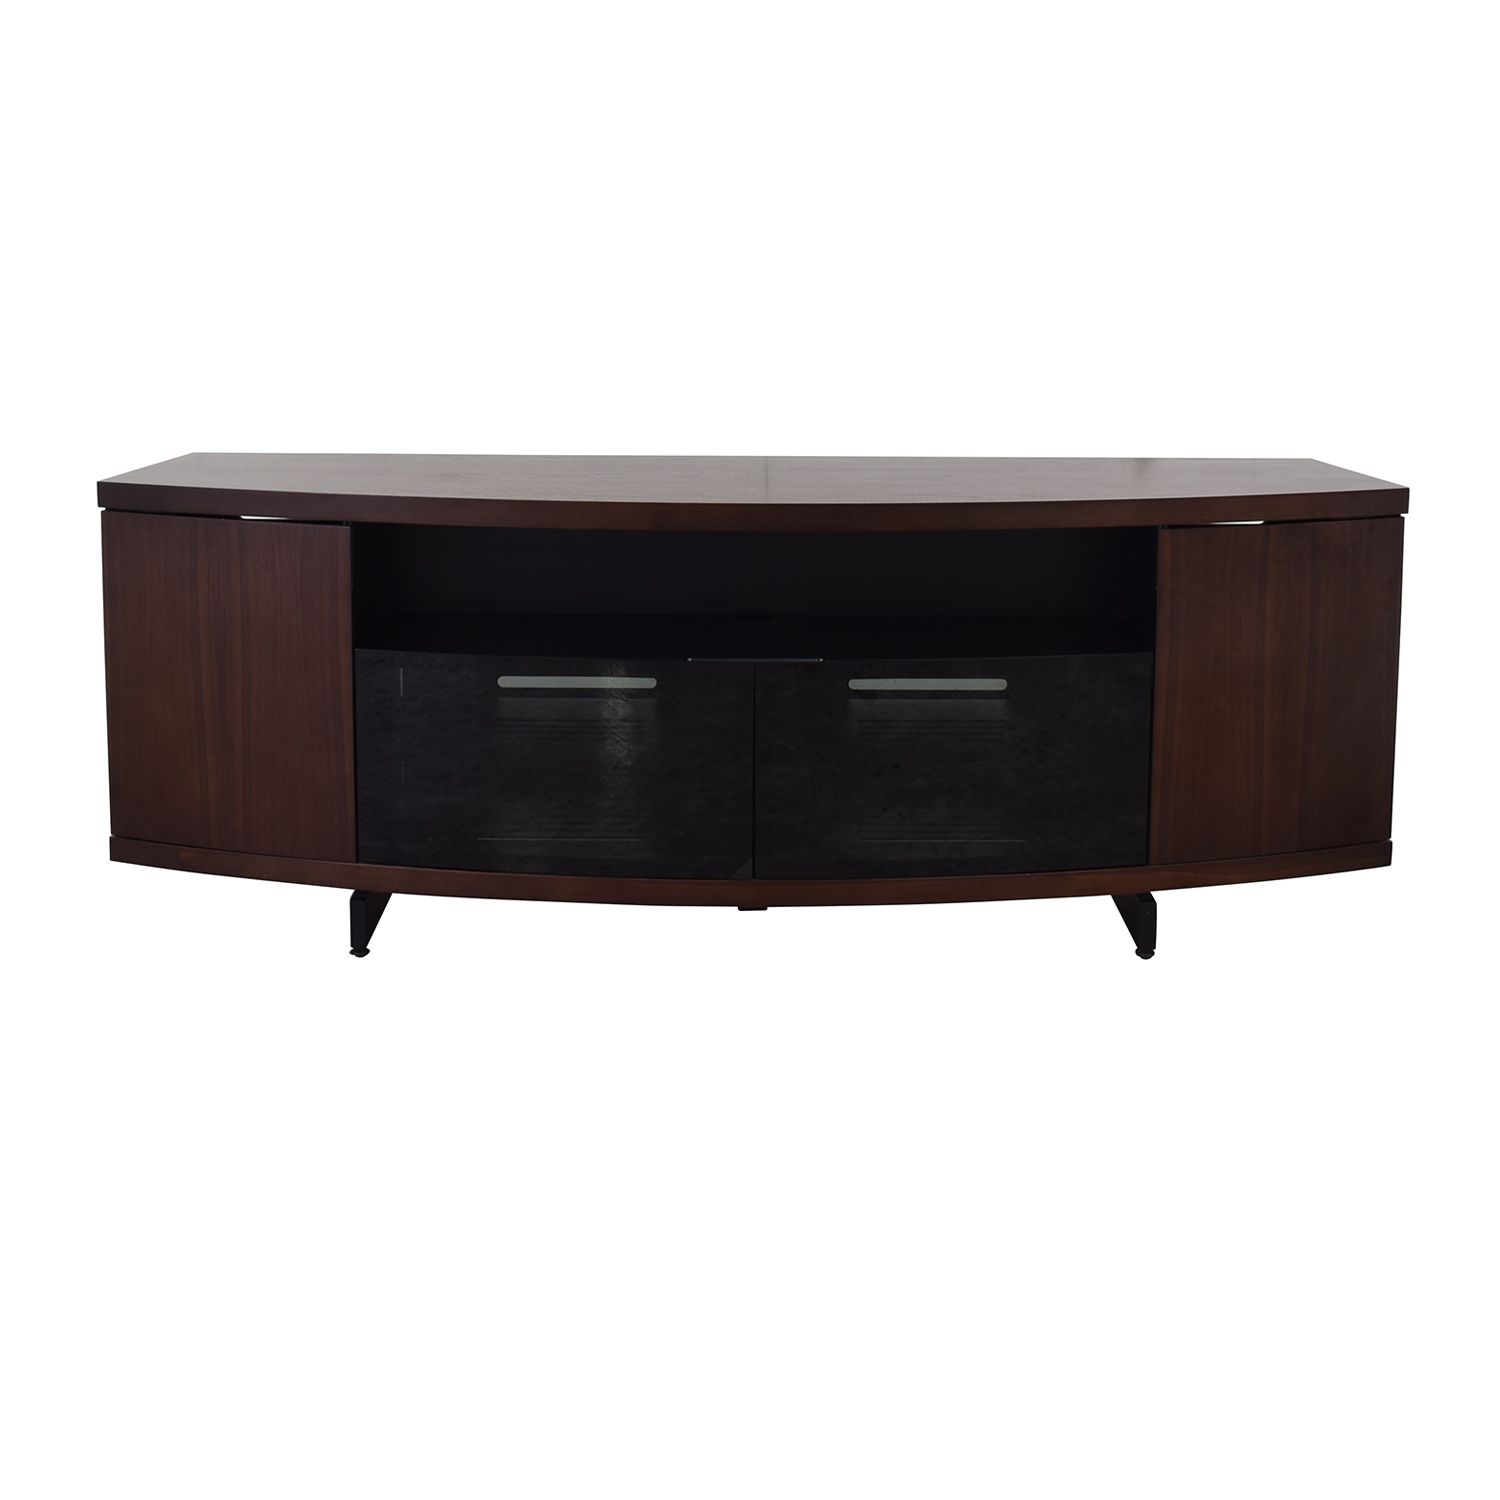 BDI Furniture BDI Furniture Media Unit second hand